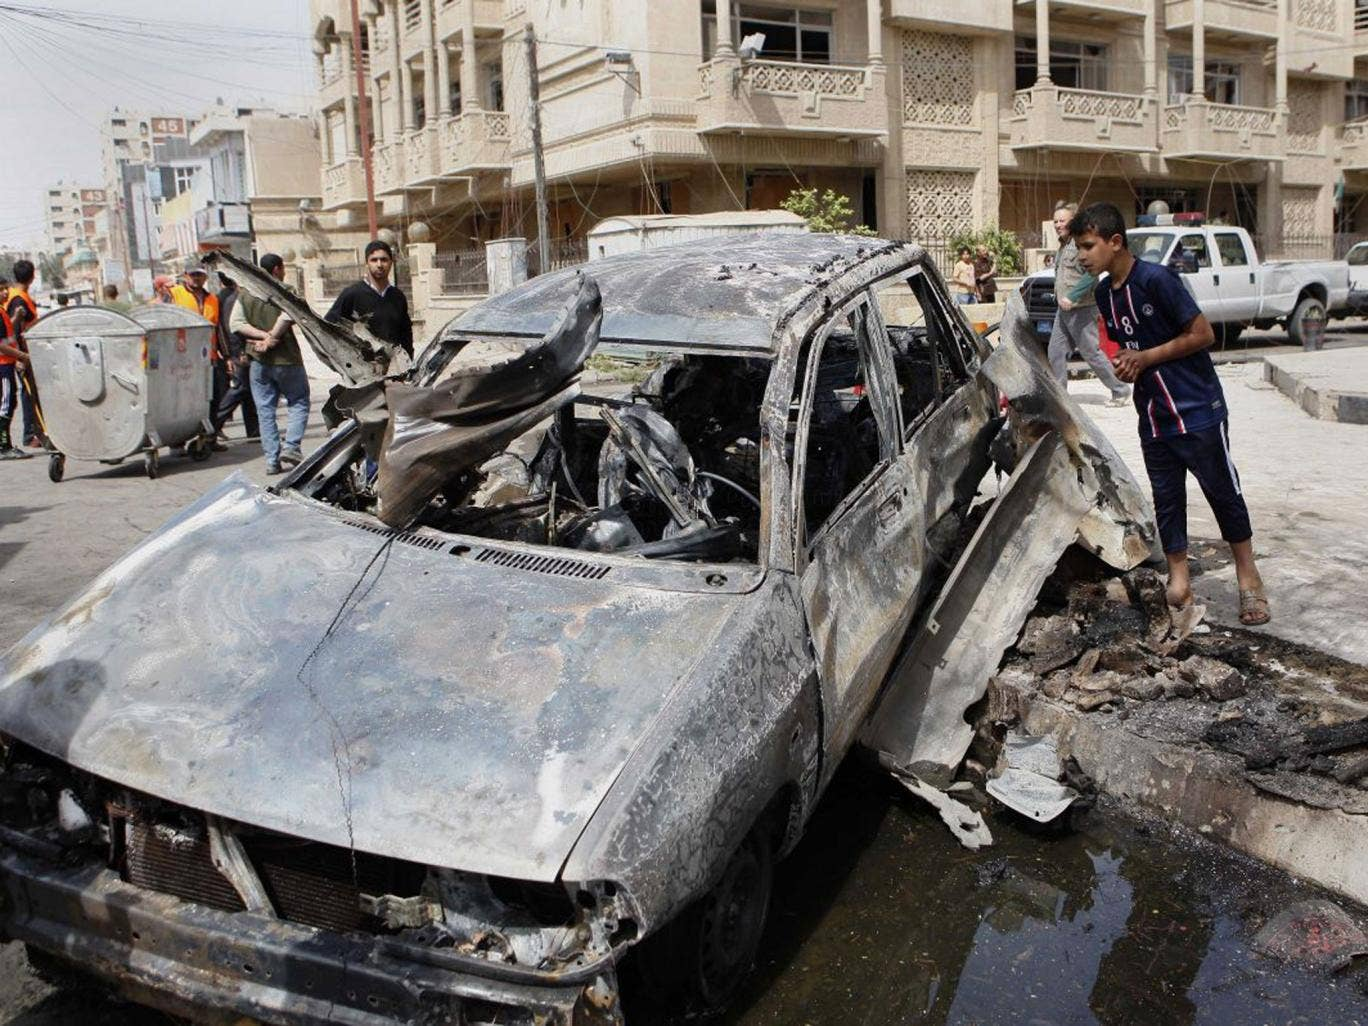 A car destroyed in an attack close to the Green Zone in Baghdad